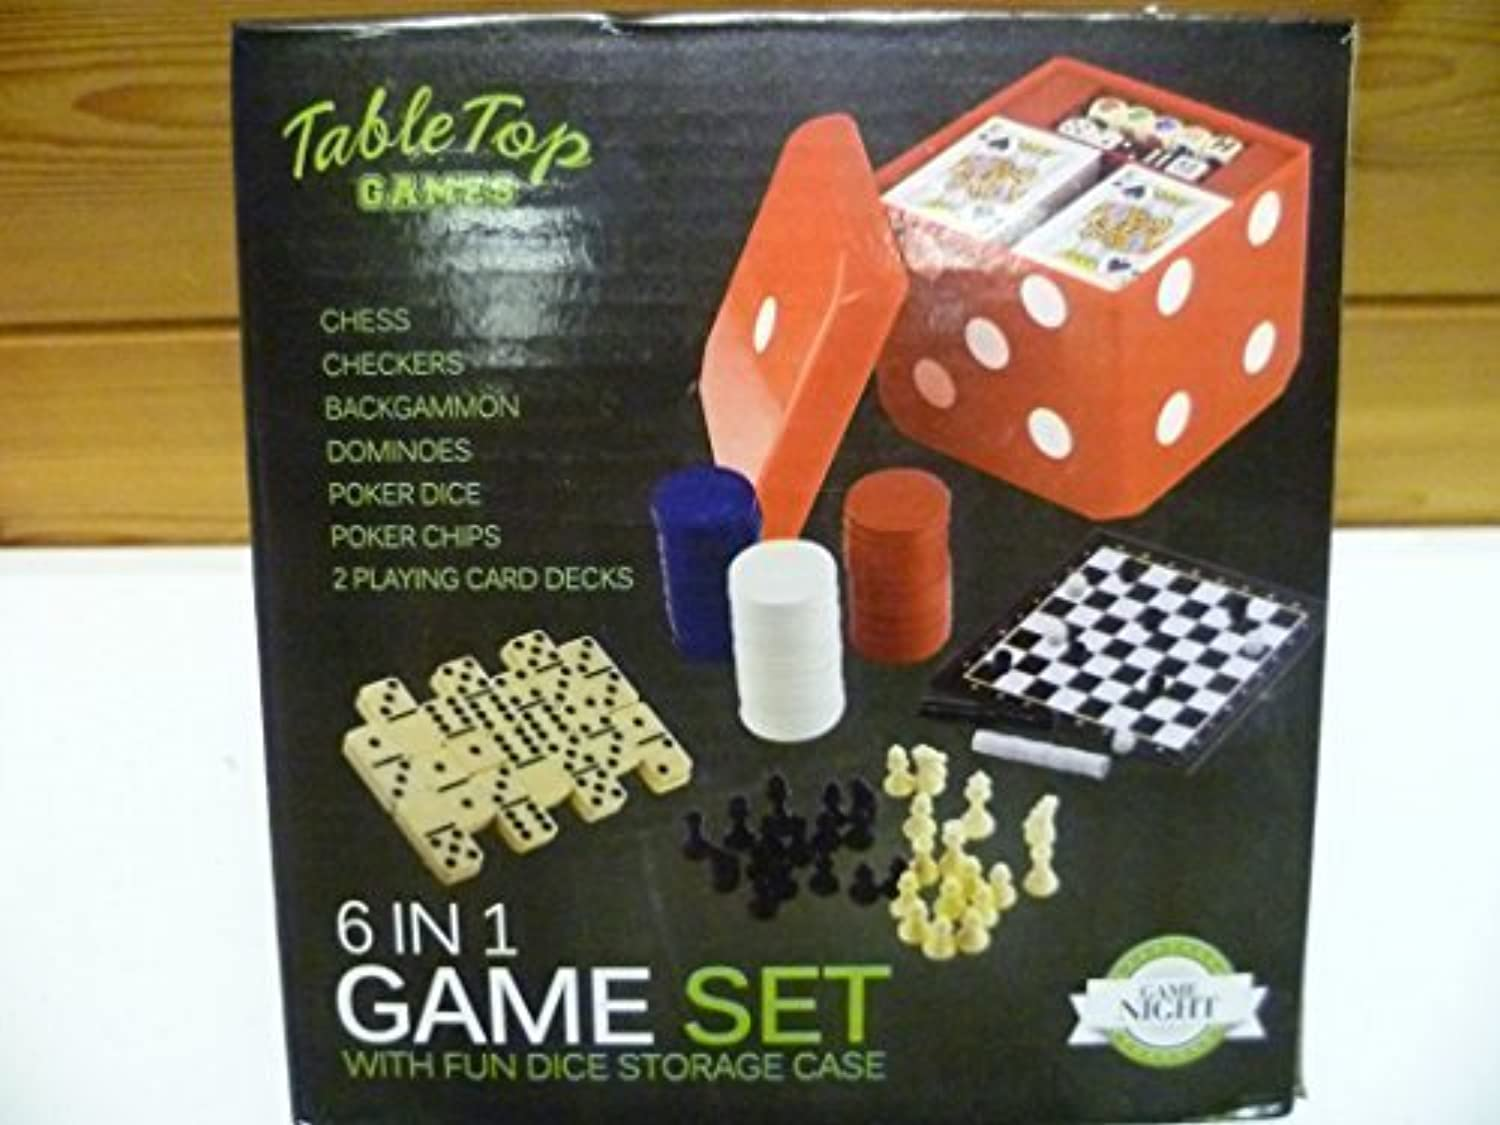 6 in 1 Game Set with Fun Dice Storage Case by Table Top Games